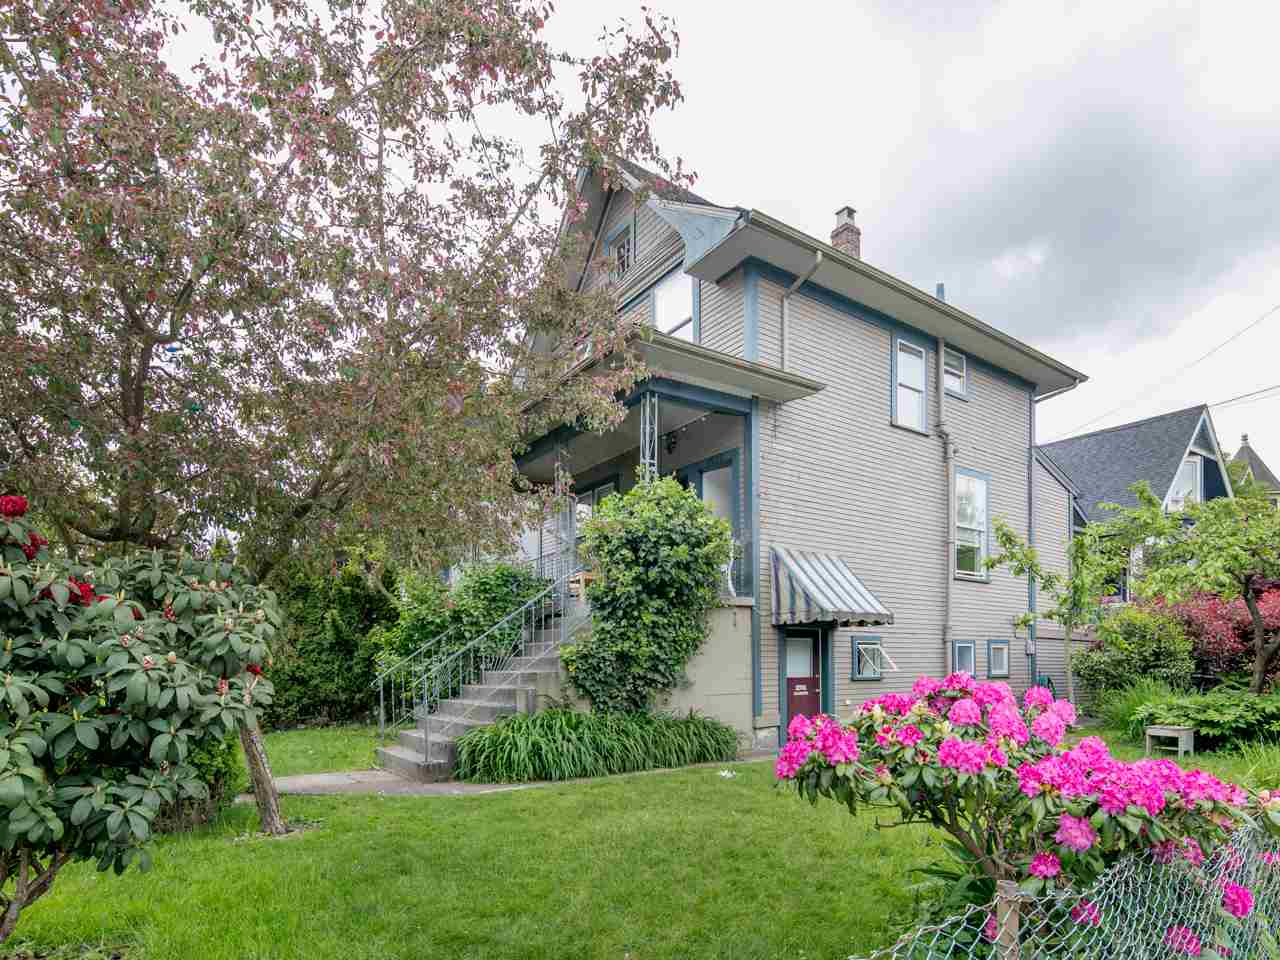 Photo 1: 1505 SALSBURY Drive in Vancouver: Grandview VE House for sale (Vancouver East)  : MLS(r) # R2179781